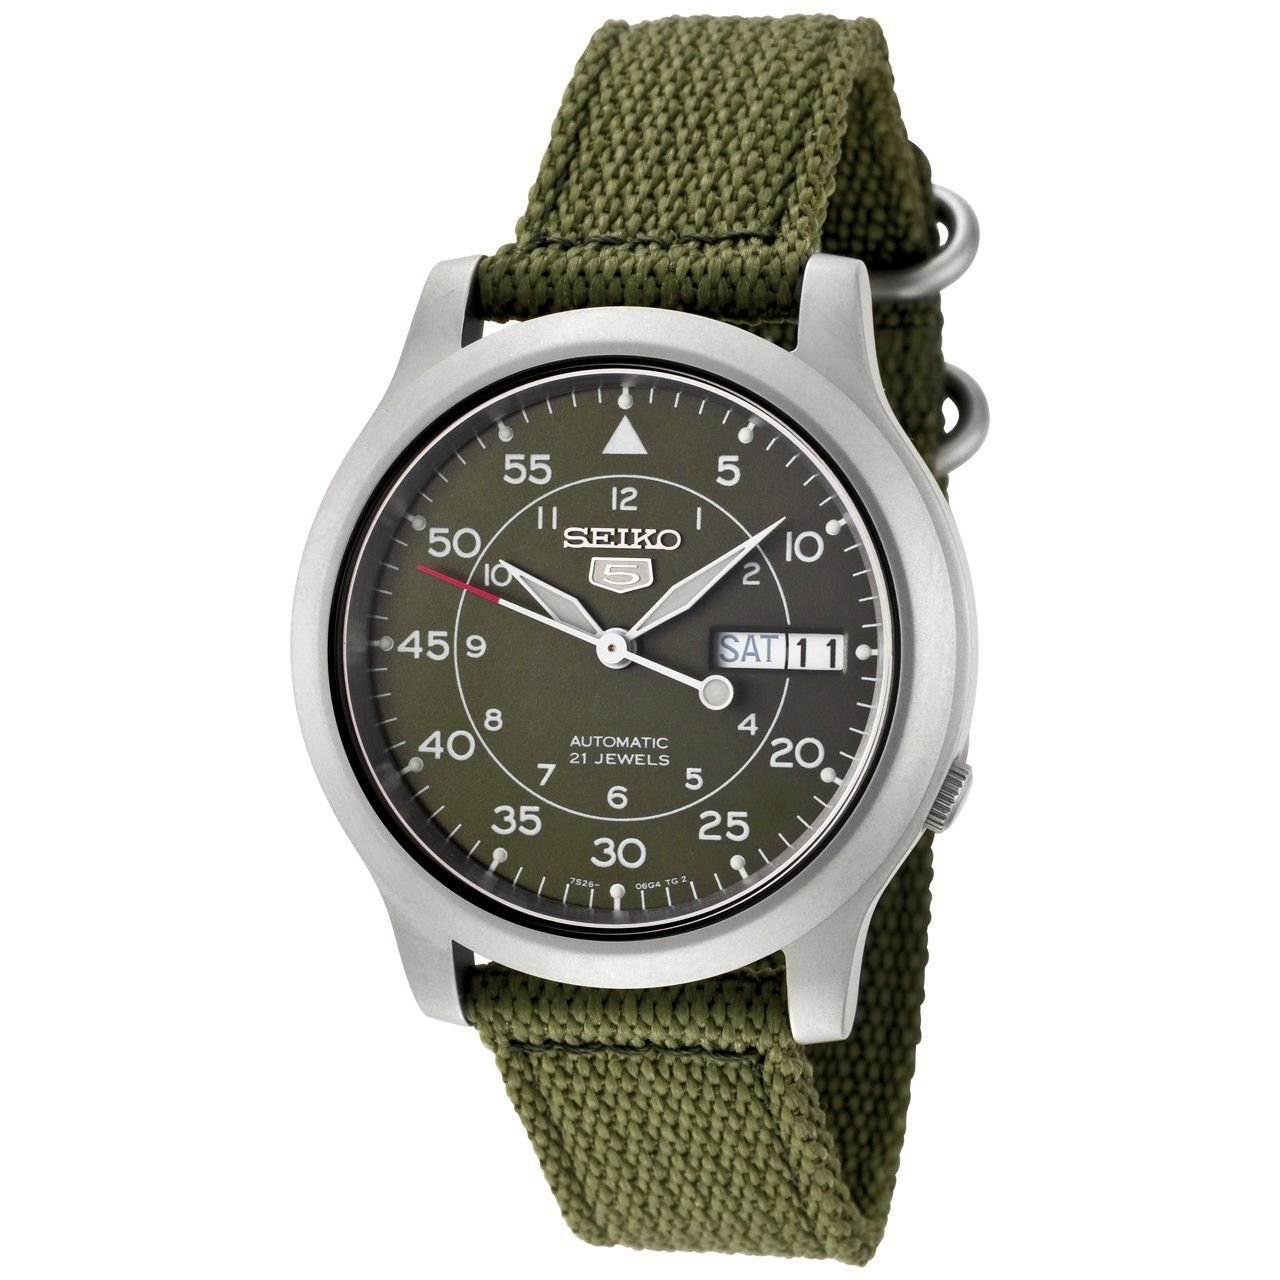 Seiko Men&#8217;s SNK805 Seiko 5 Automatic Green Canvas Strap Watch $55.01